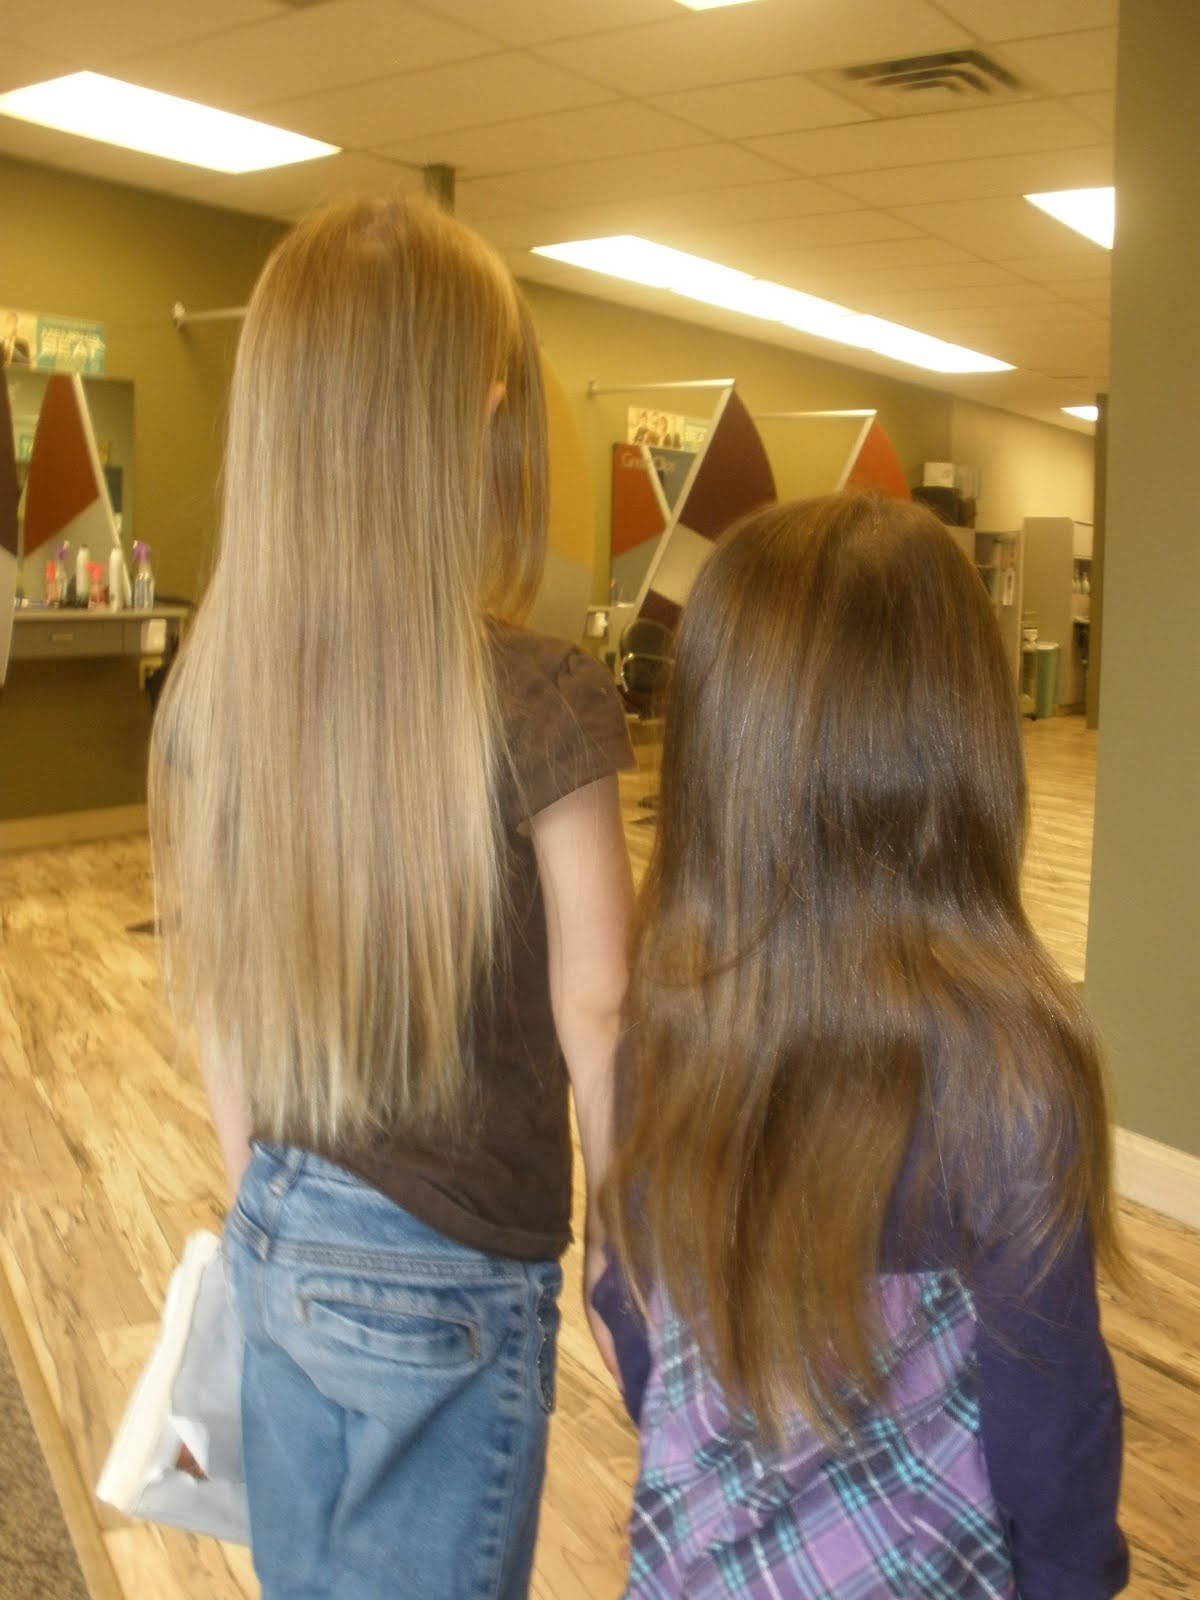 Best ideas about Locks Of Love Free Hair Cut . Save or Pin Locks of Love Now.